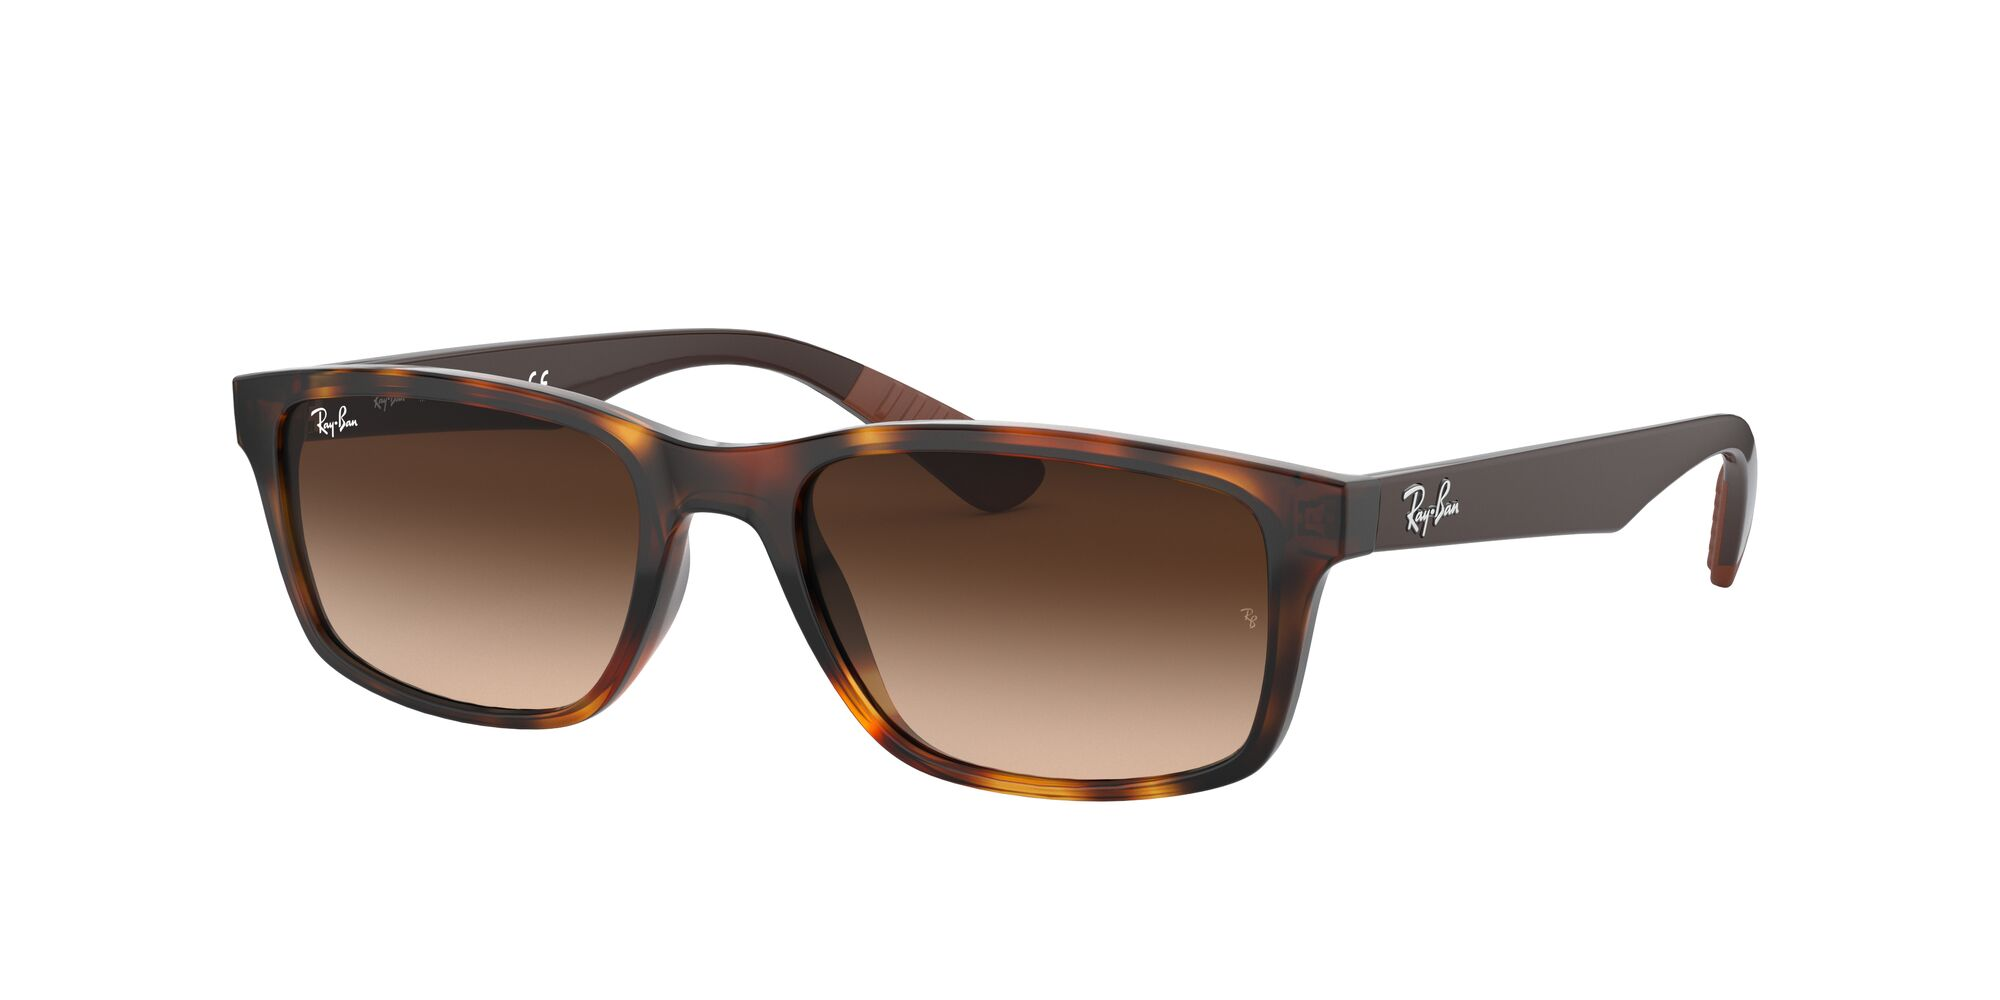 Angle_Left01 Ray-Ban Ray-Ban 0RB4234 620513 58/16 Bruin, Zilver/Bruin